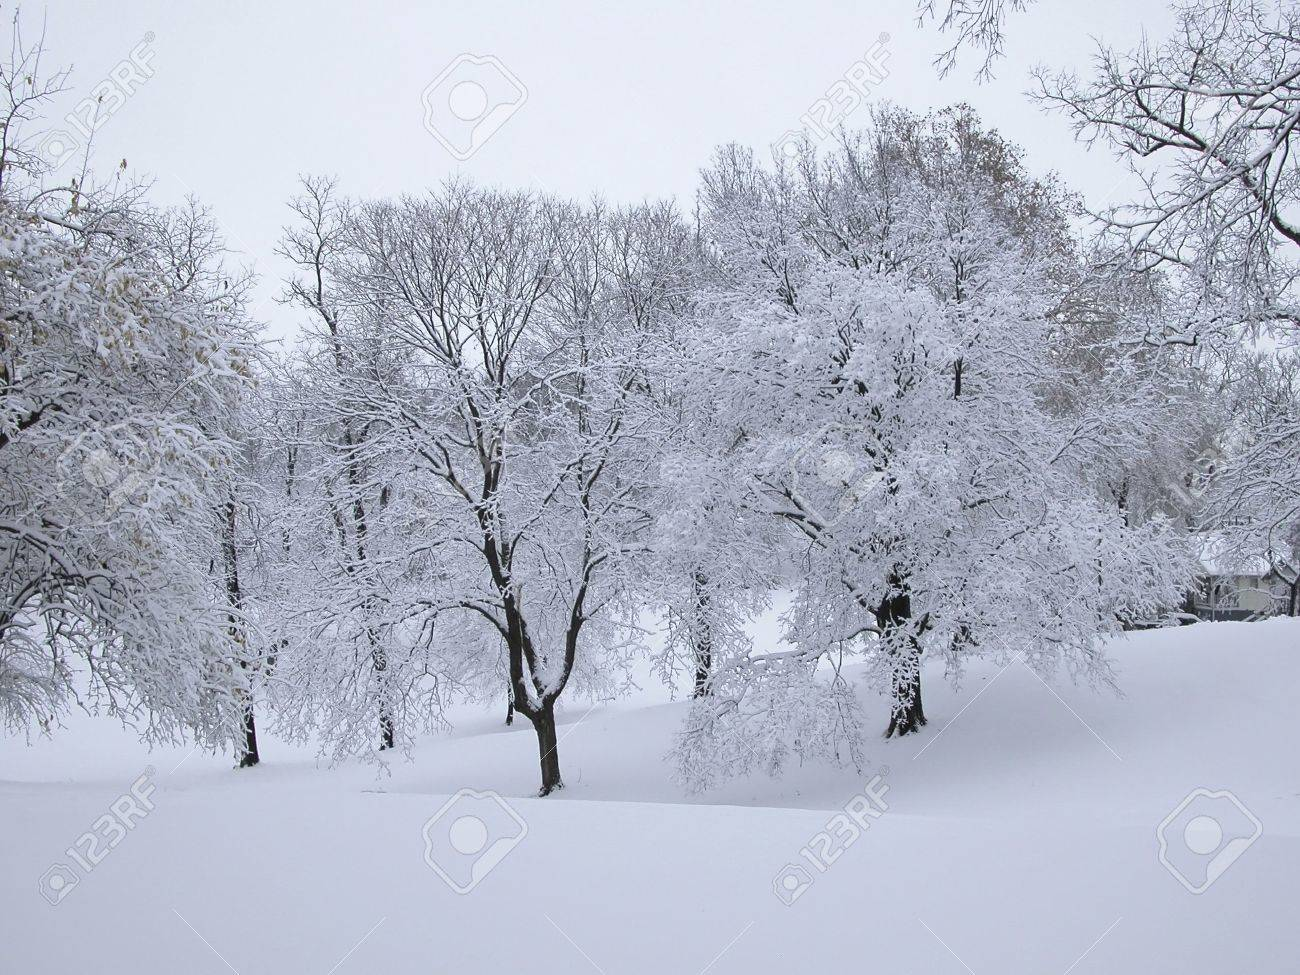 Snowy scene with hills and trees. Stock Photo - 2415093